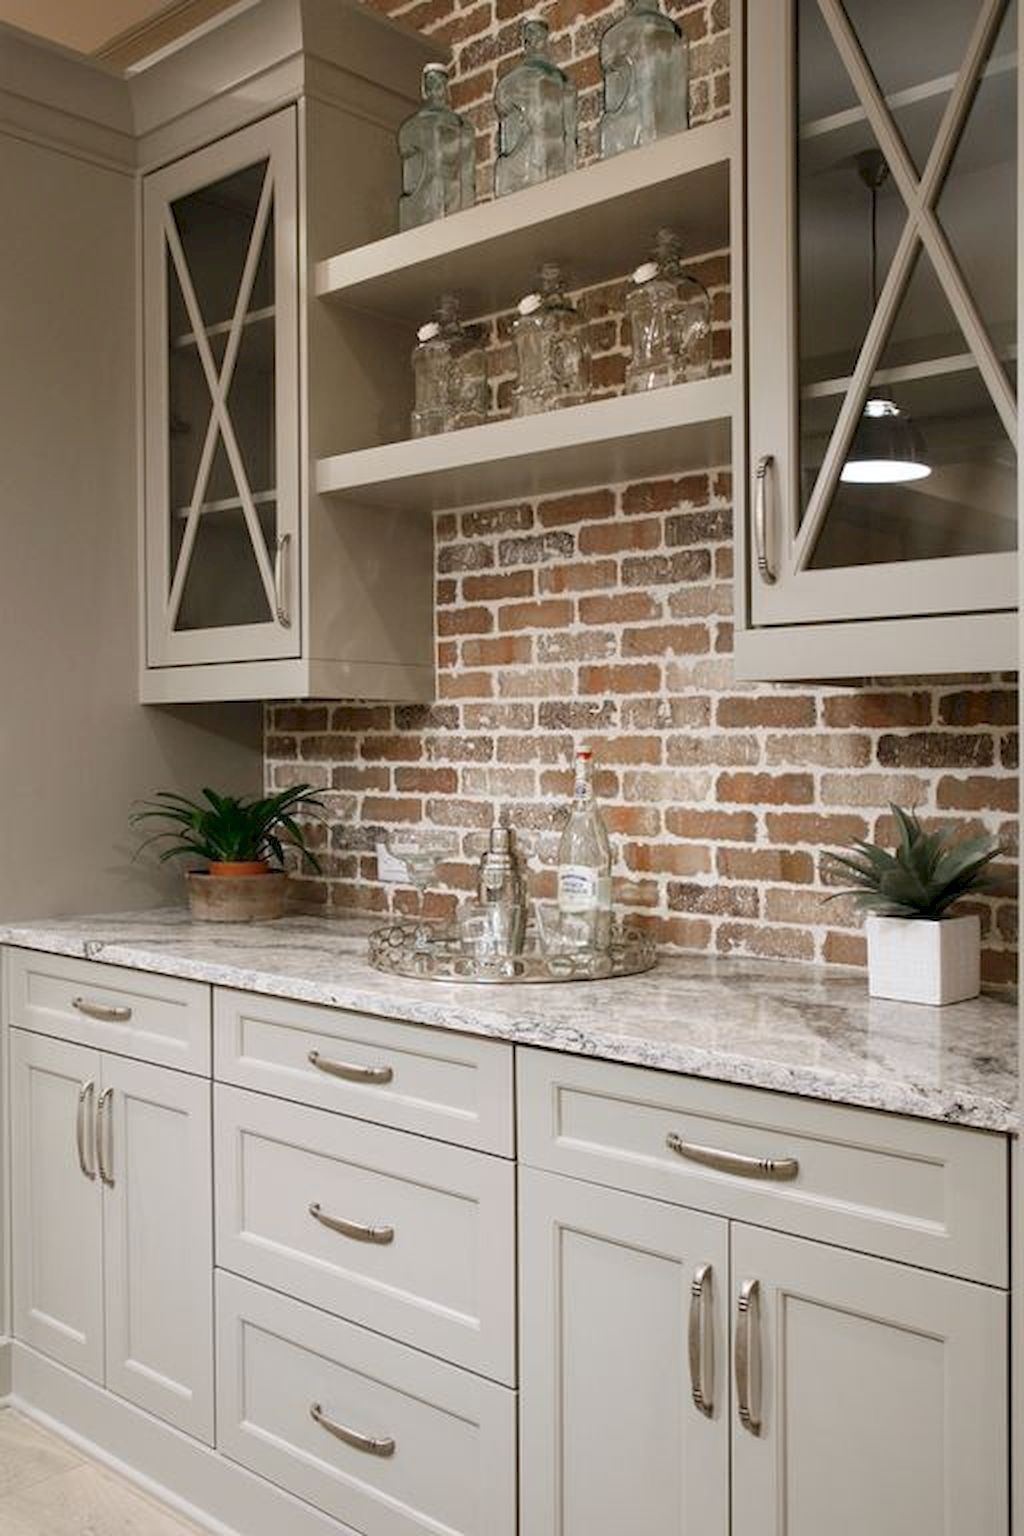 60 fancy farmhouse kitchen backsplash decor ideas 49 farmhouse kitchen cabinets rustic on farmhouse kitchen backsplash id=30790